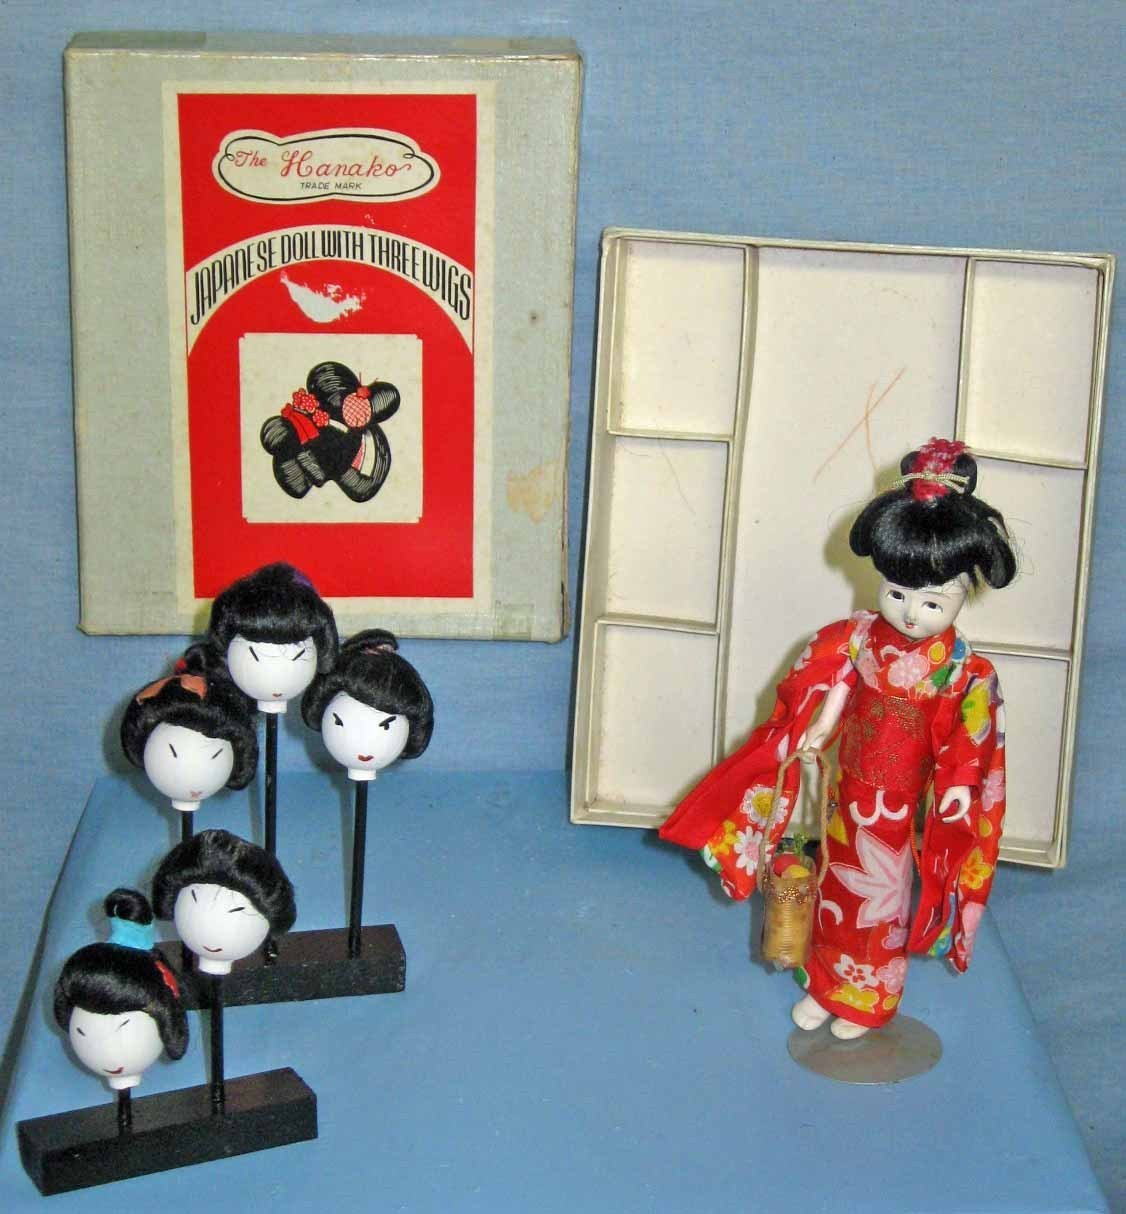 Japanese Doll With Three Wigs - The Hanako Trademark - Vintage